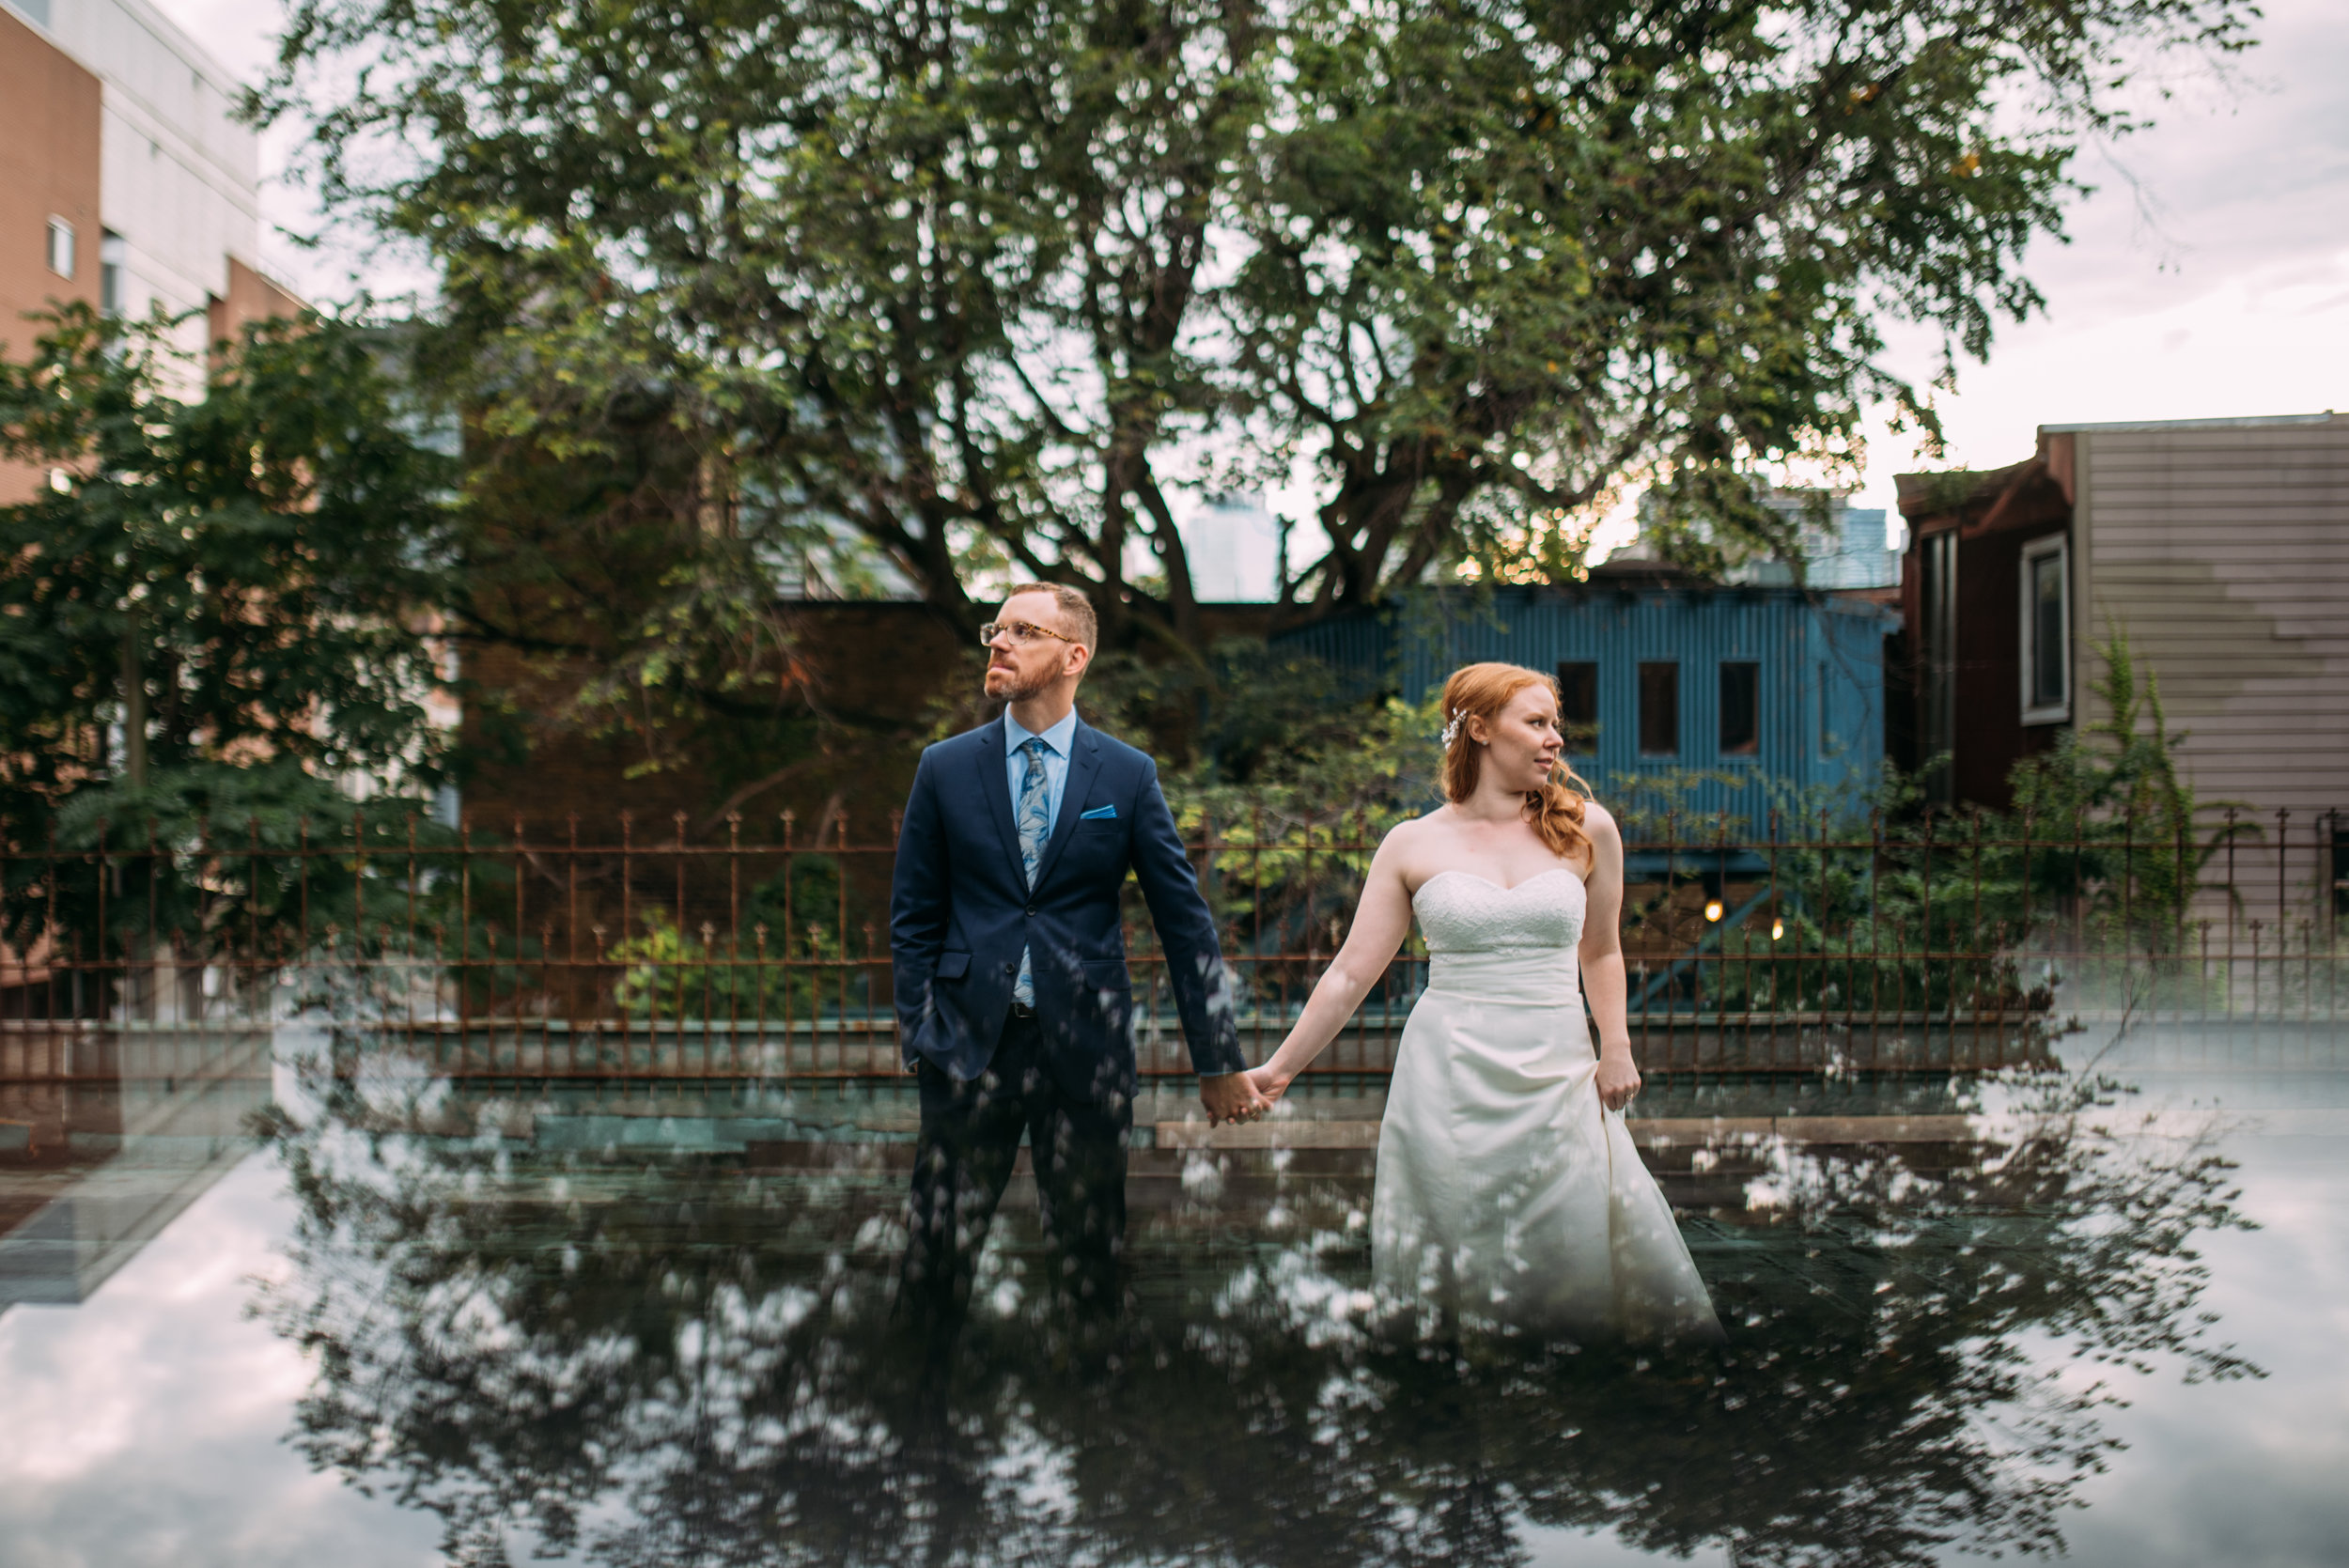 Toronto wedding photography with soundslikeyellowphotography at the Berkeley Field House